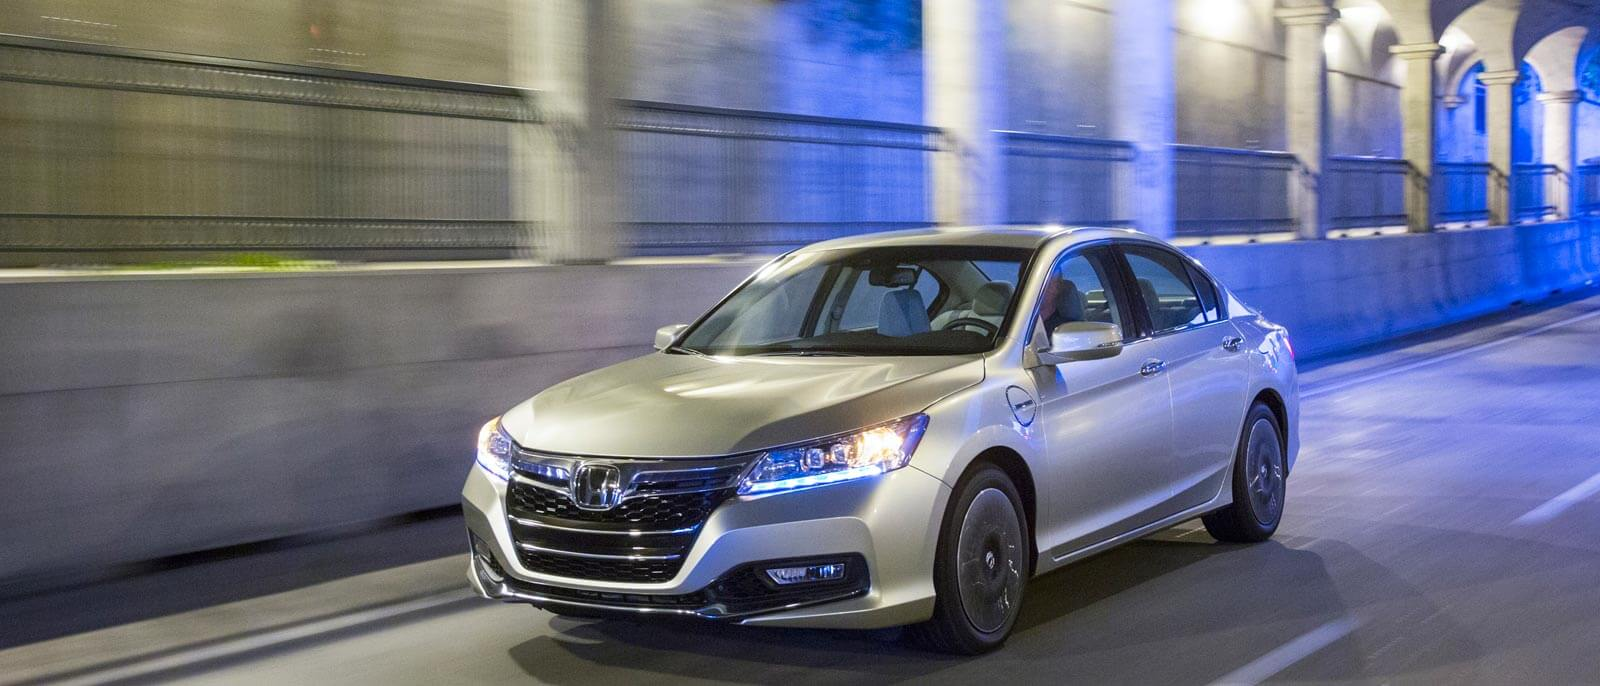 2015 Honda Accord Hybrid city scene